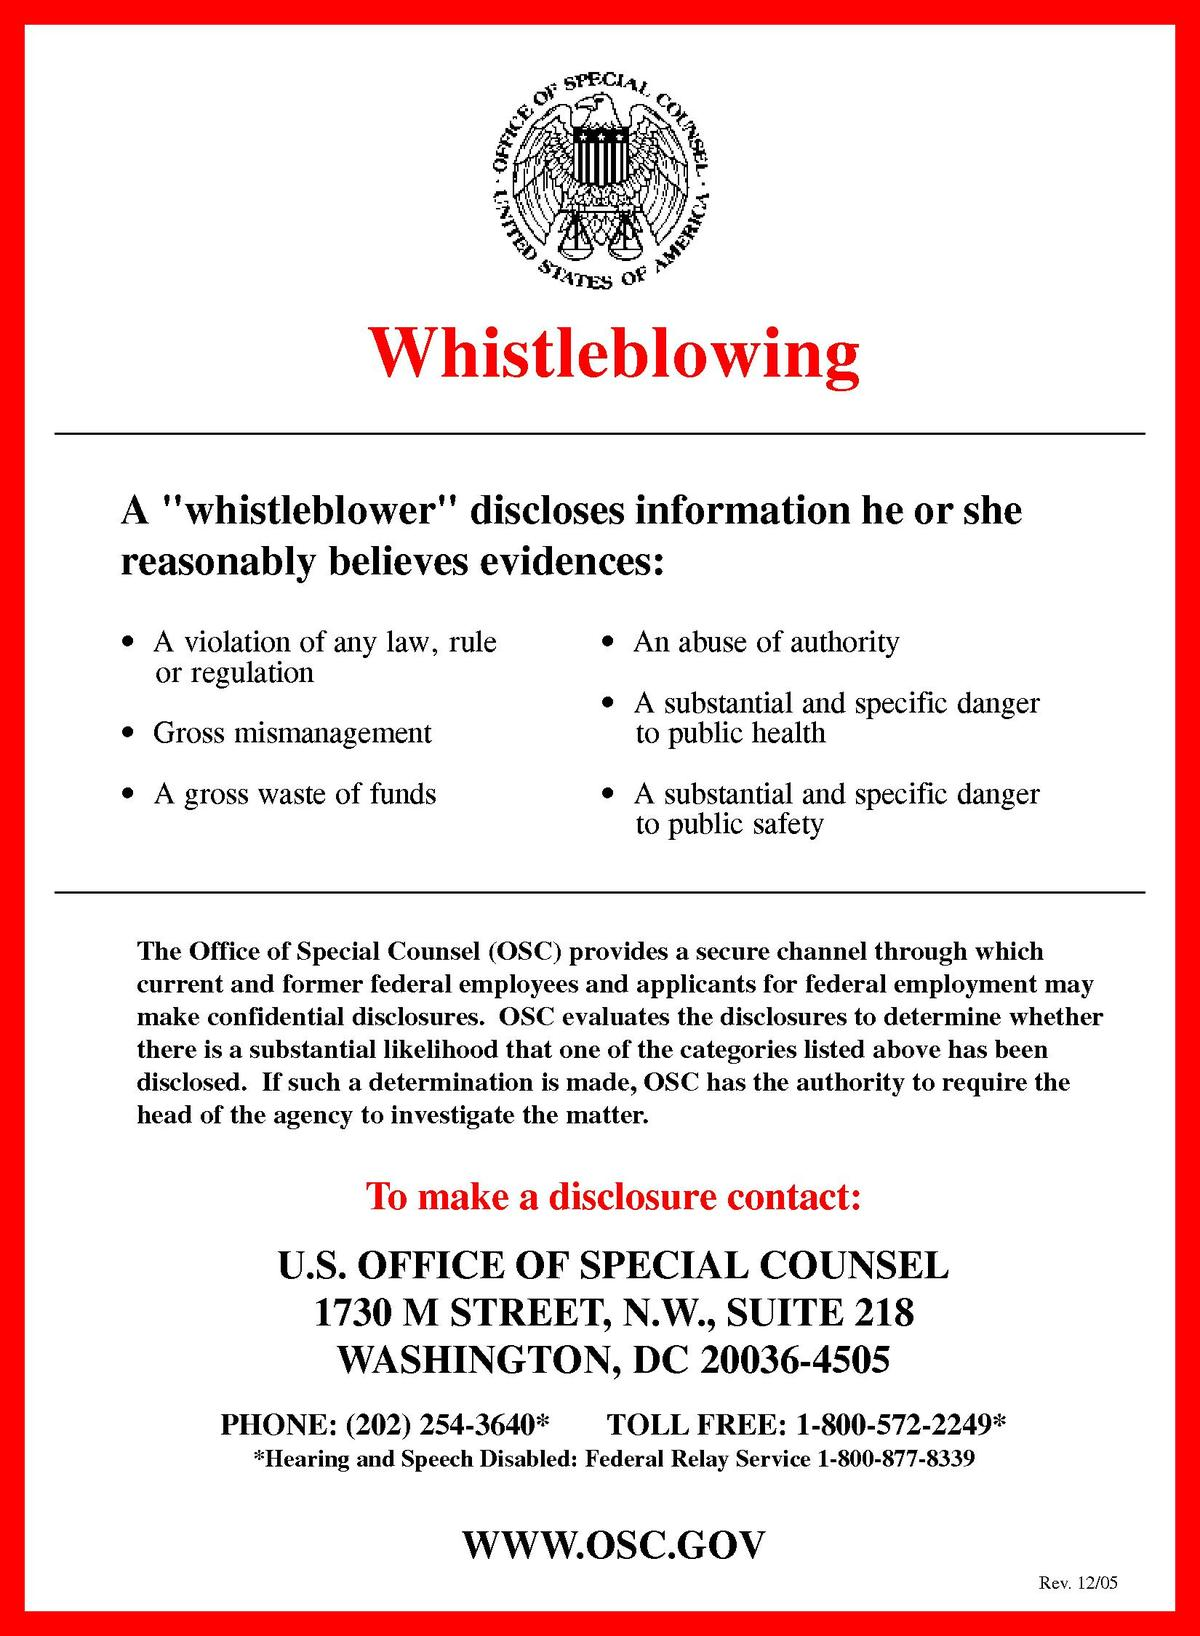 whistleblower protection in the united states